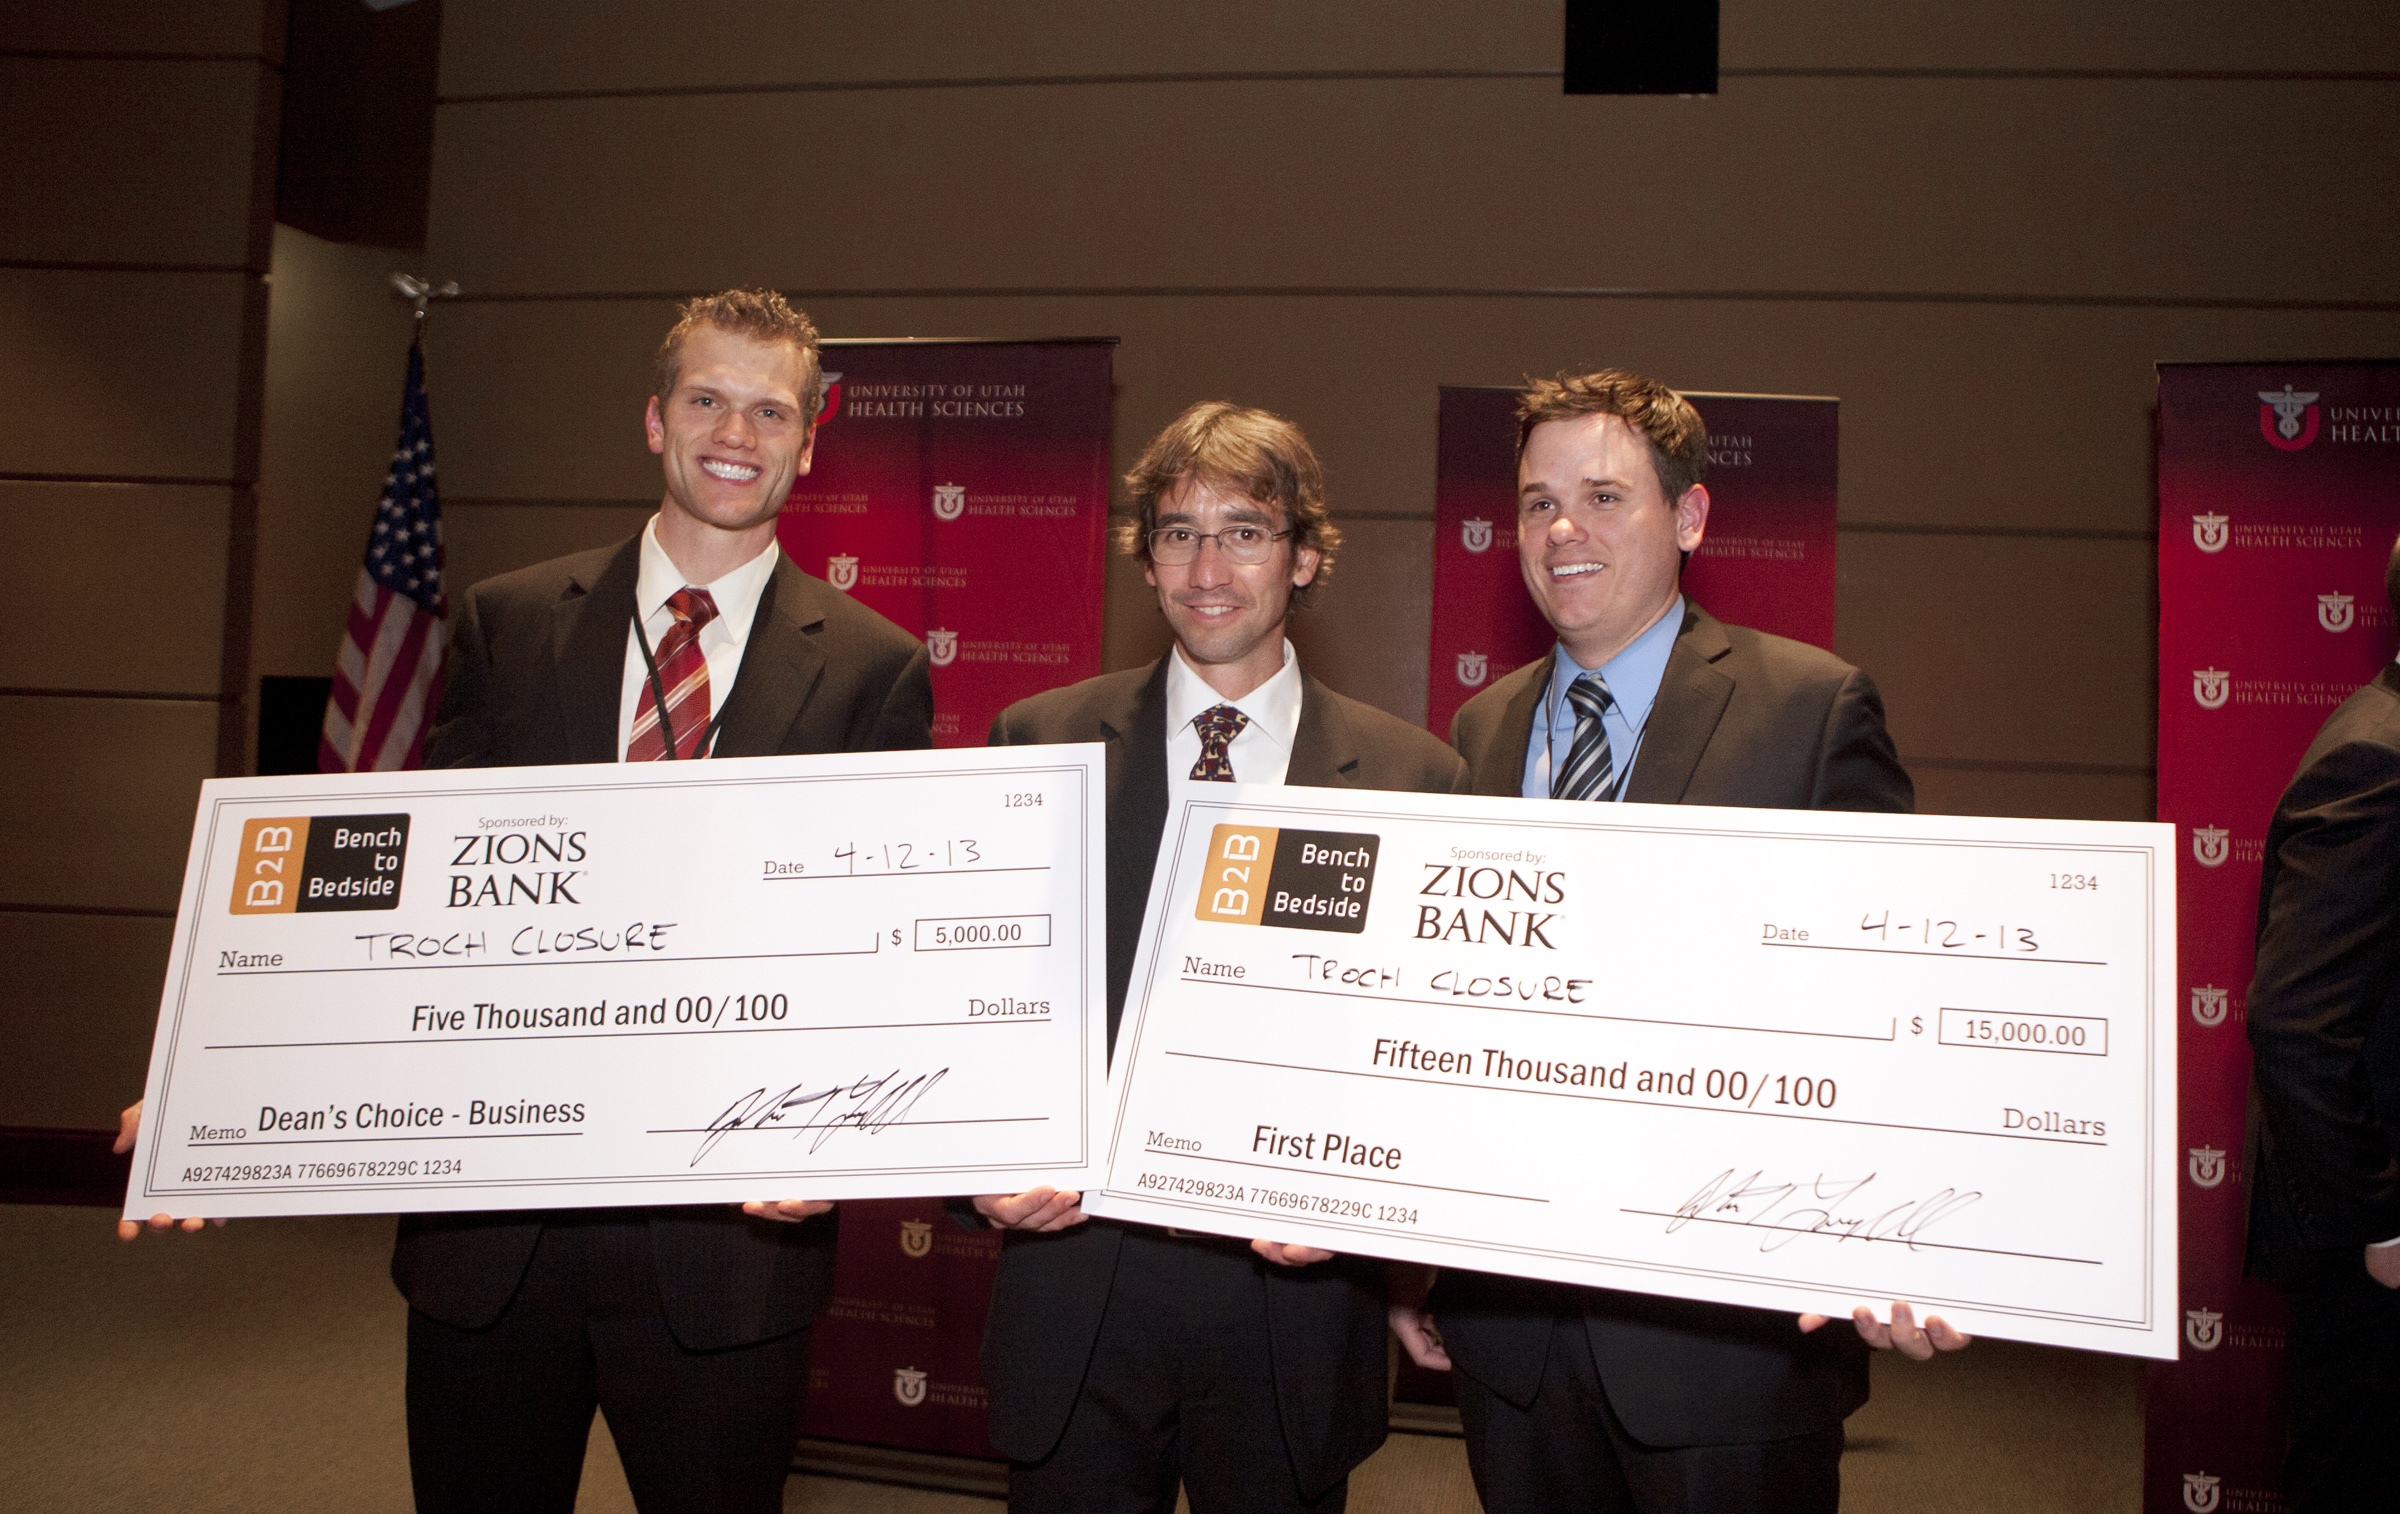 Team Troclosure won $20,000 at the third annual Bench-2-Bedside competition at the University of Utah.